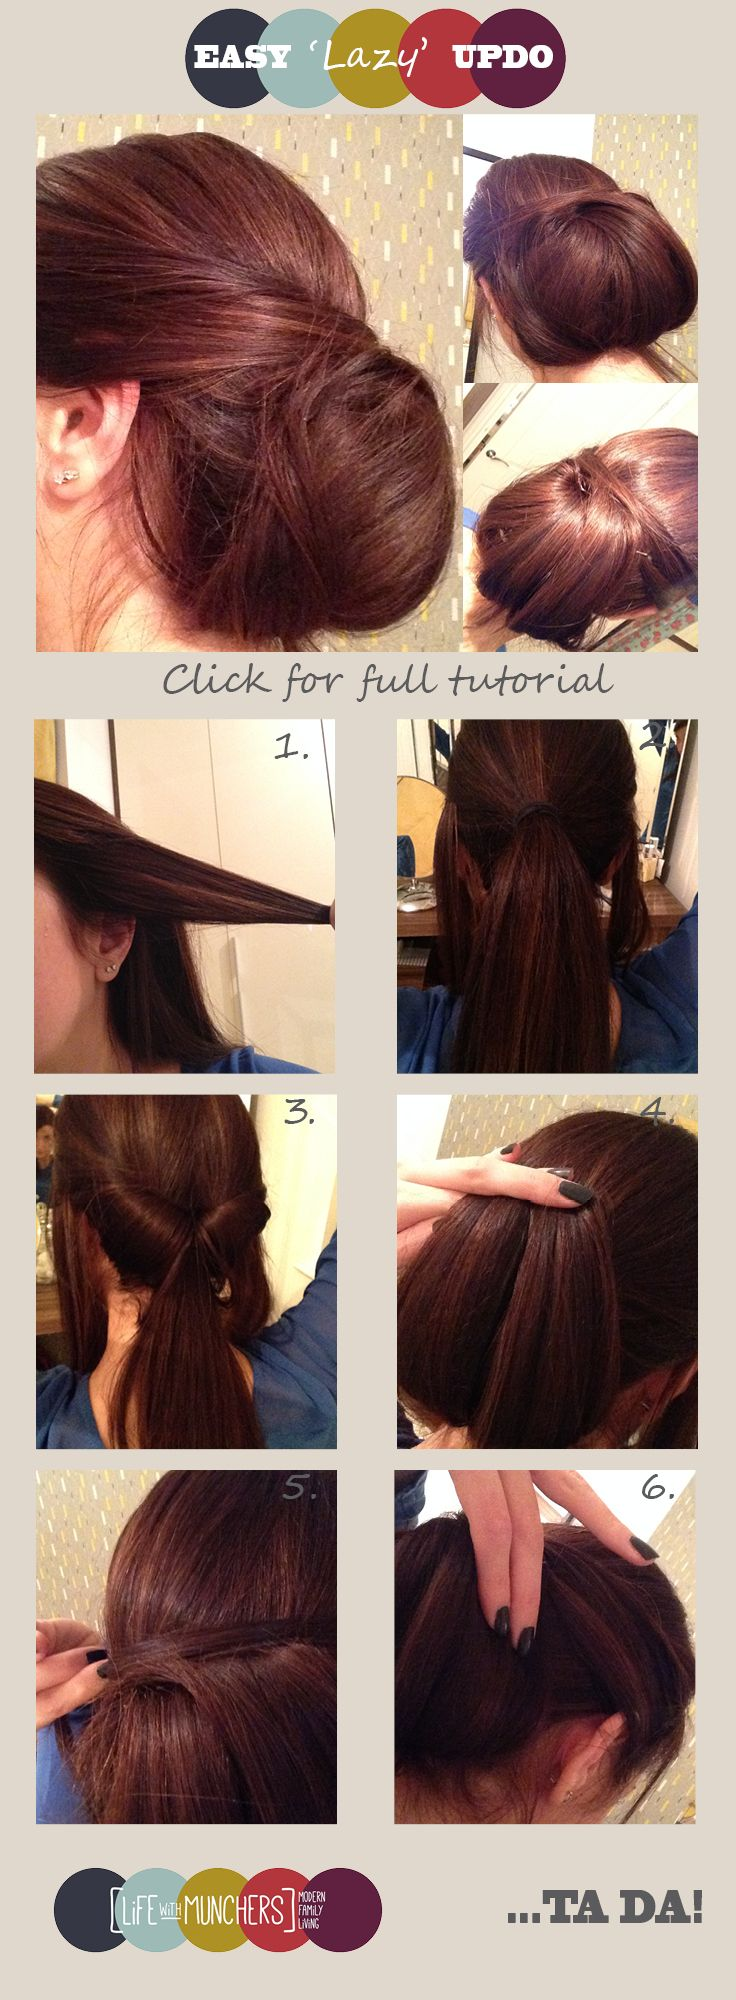 Easy updo for long hair chignon tutorial easy updo and chignons